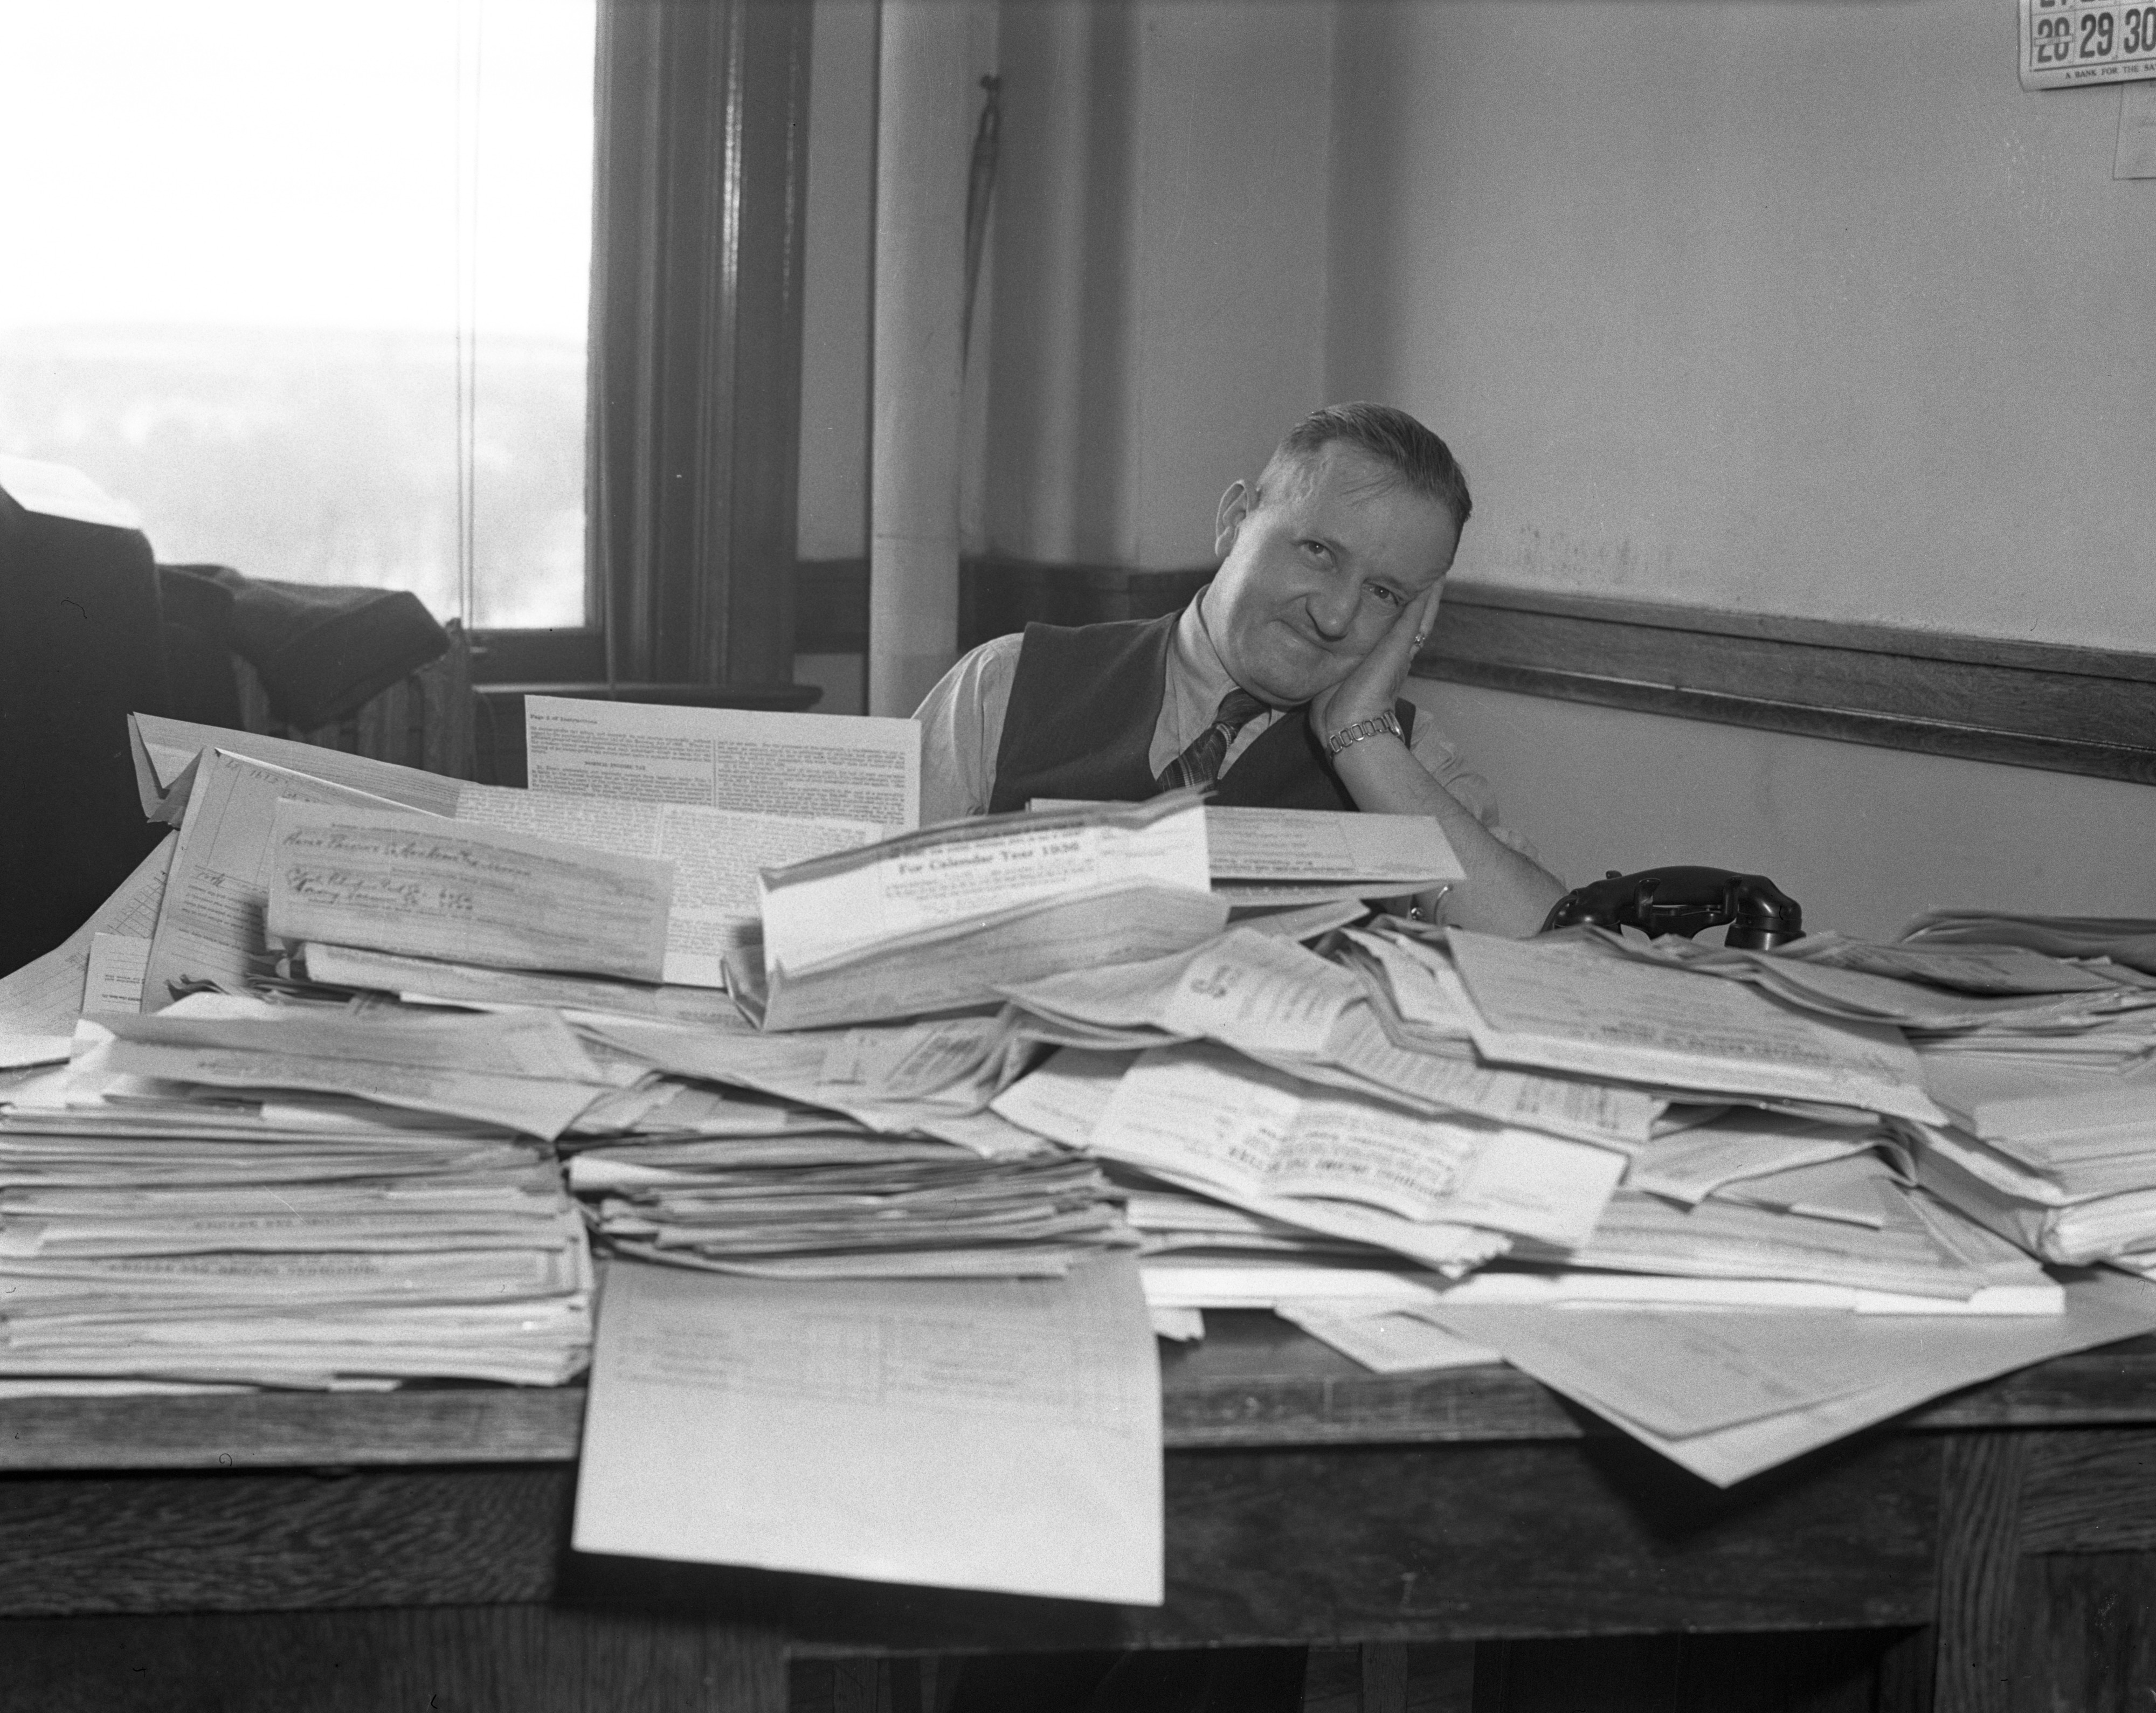 Frank W. Stampfler, Internal Revenue Collector, Swamped With Tax Returns, March 16, 1937 image